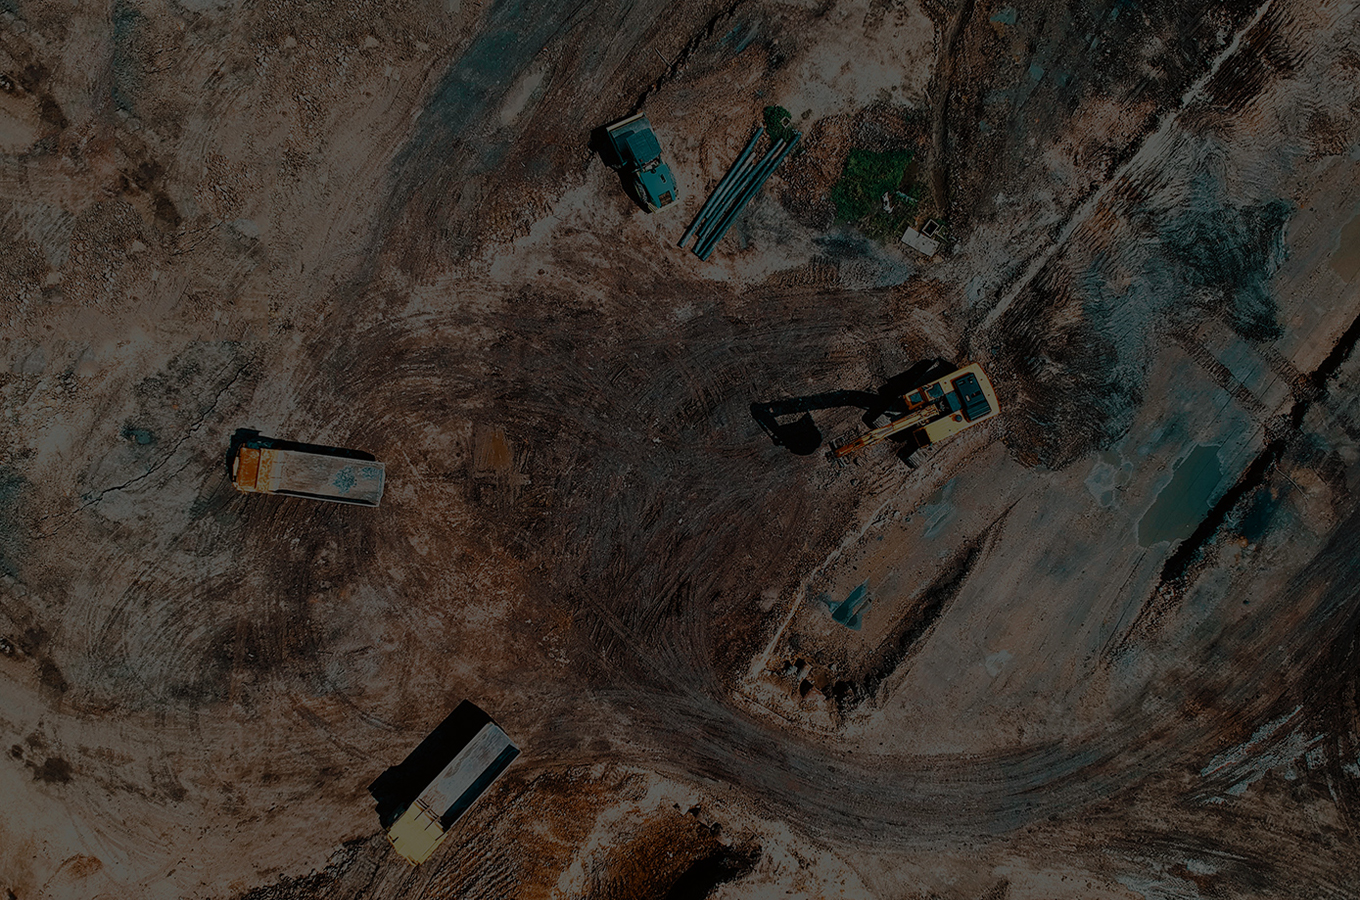 aerial view of construction site - dark overlay on photo